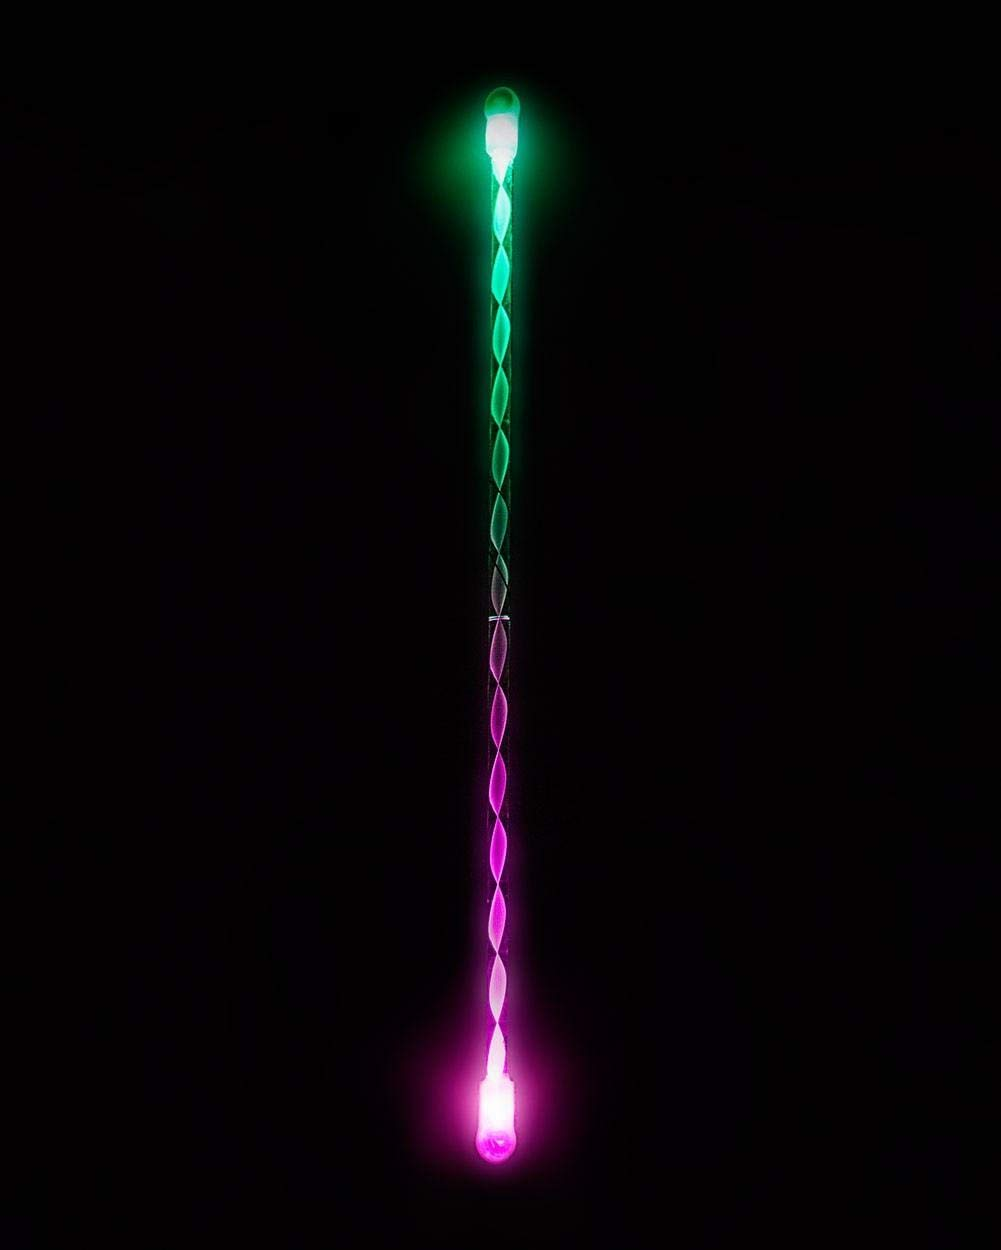 EmazingLights Elite Flow LED Light Up Levitation Wand - Short String Rave Toy